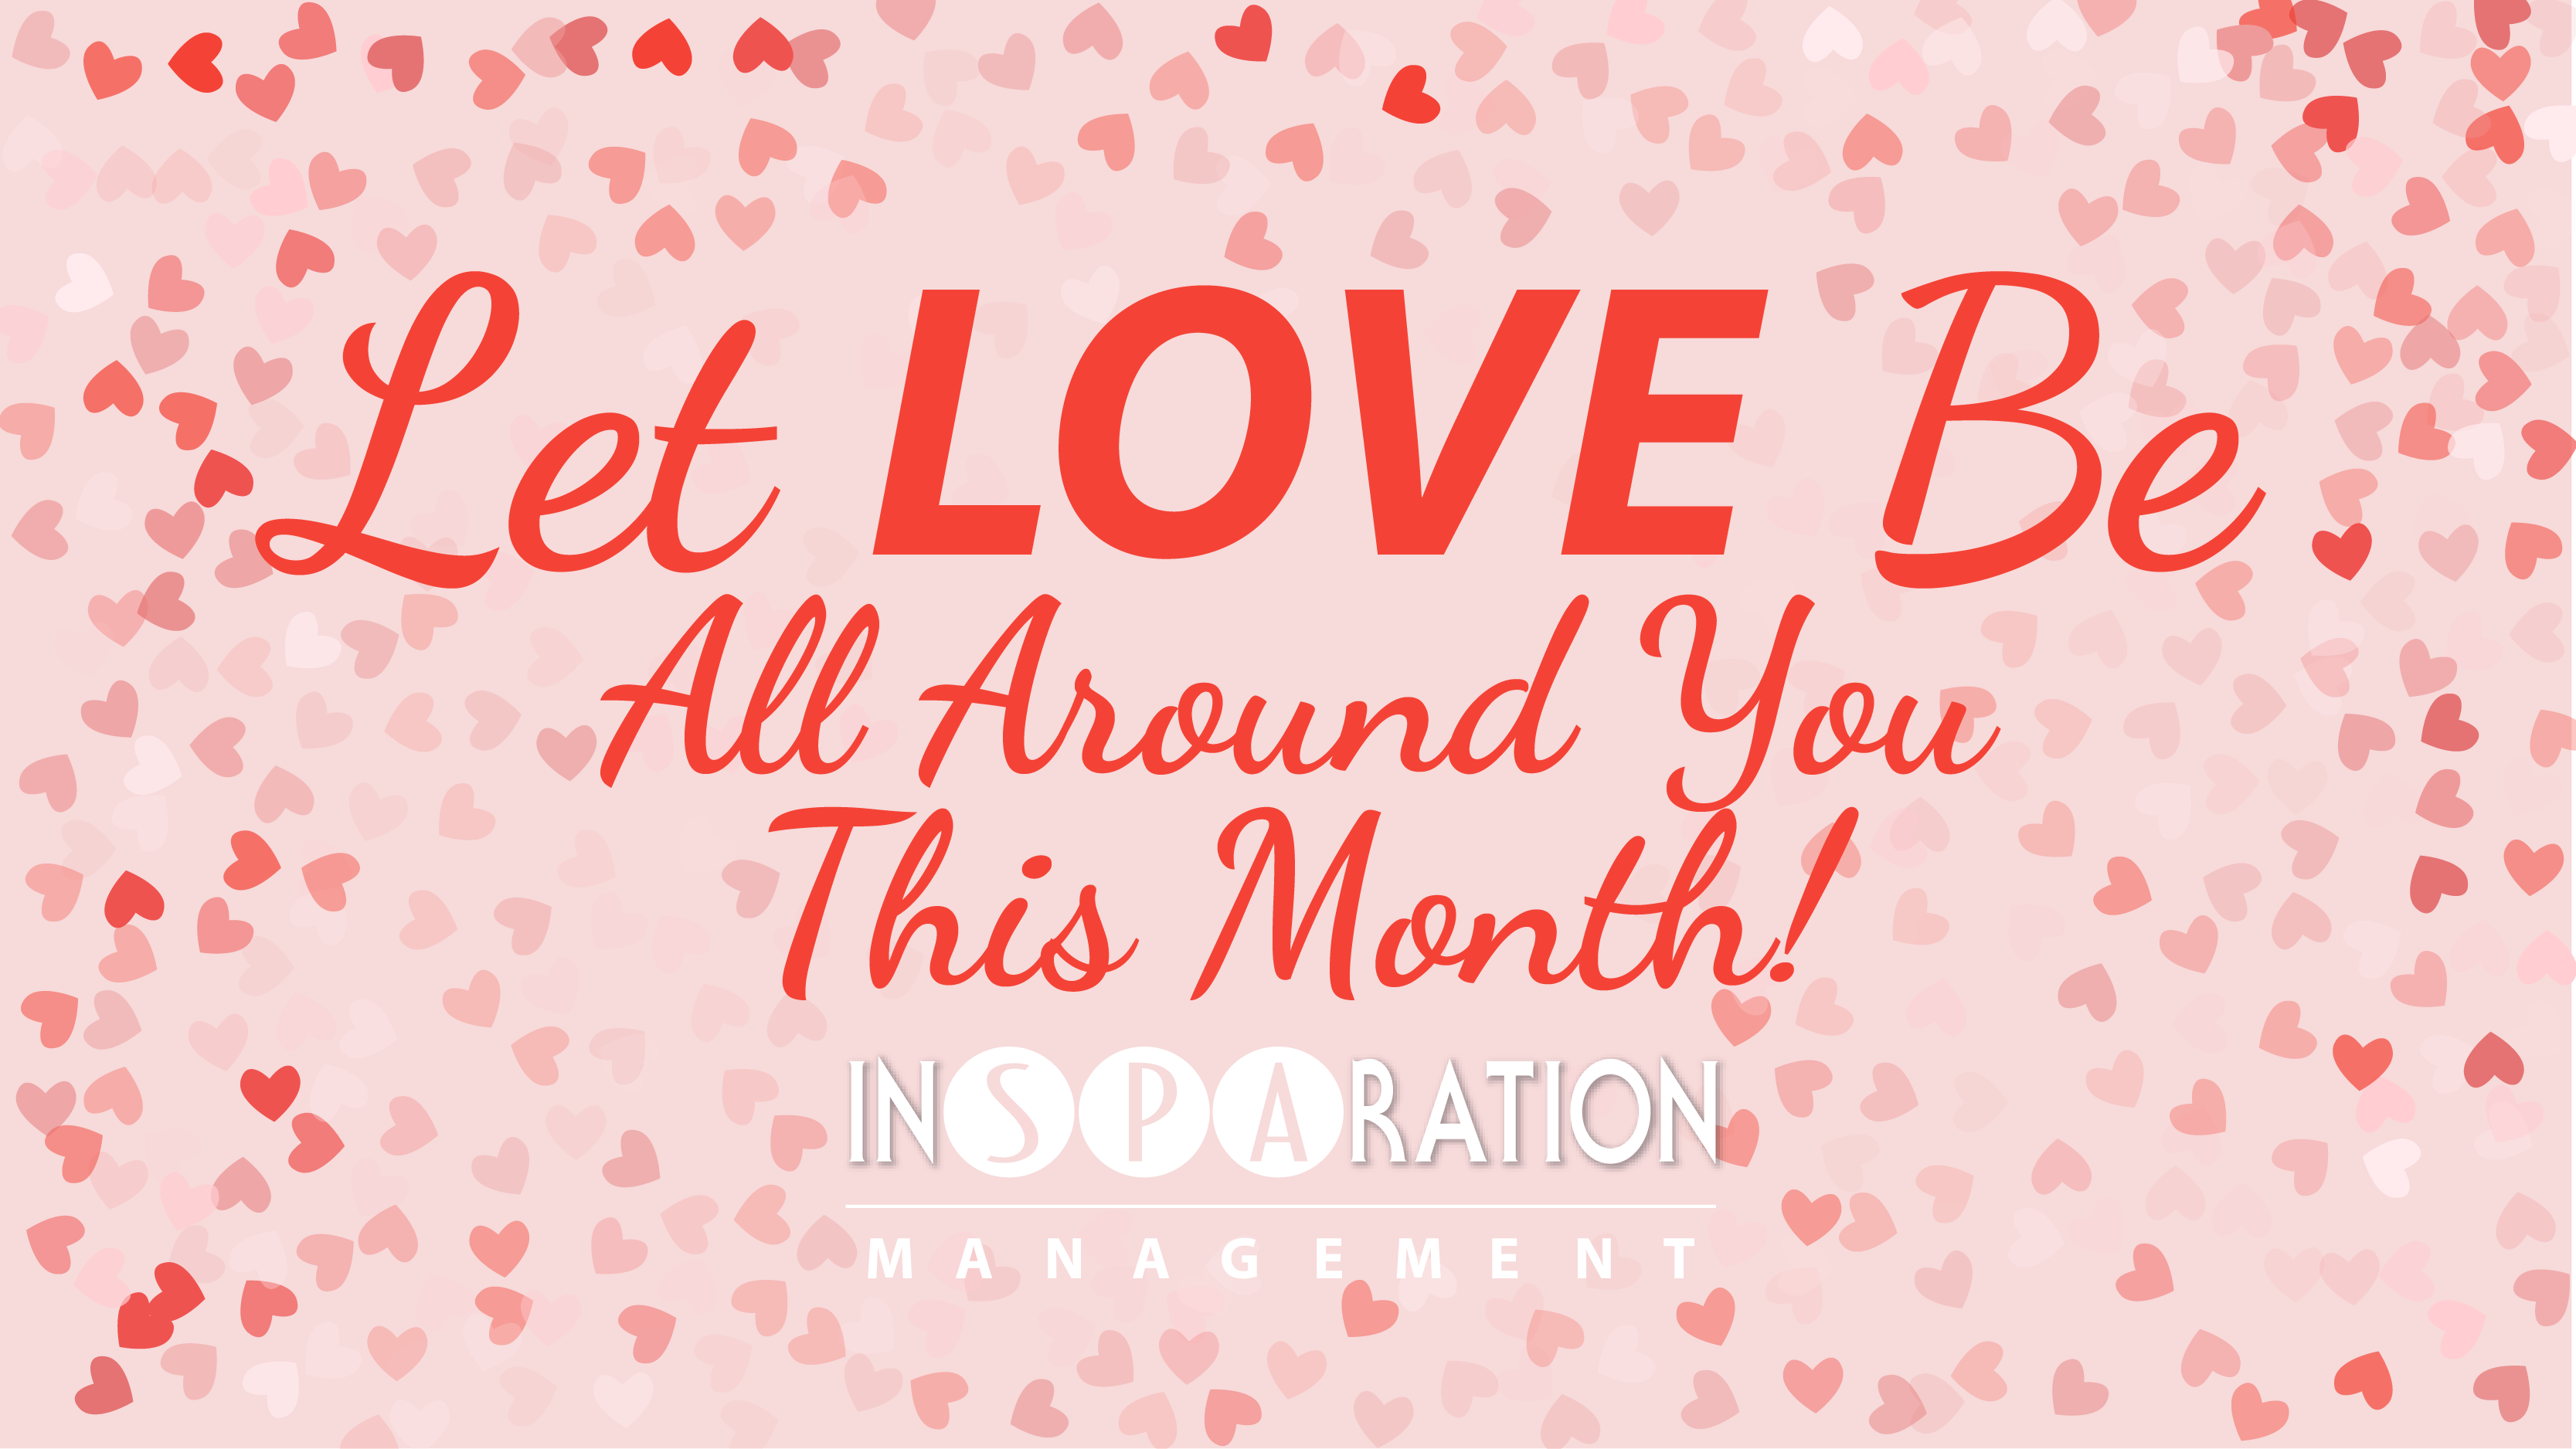 Let-Love-Be-All-Around-You-This-Month